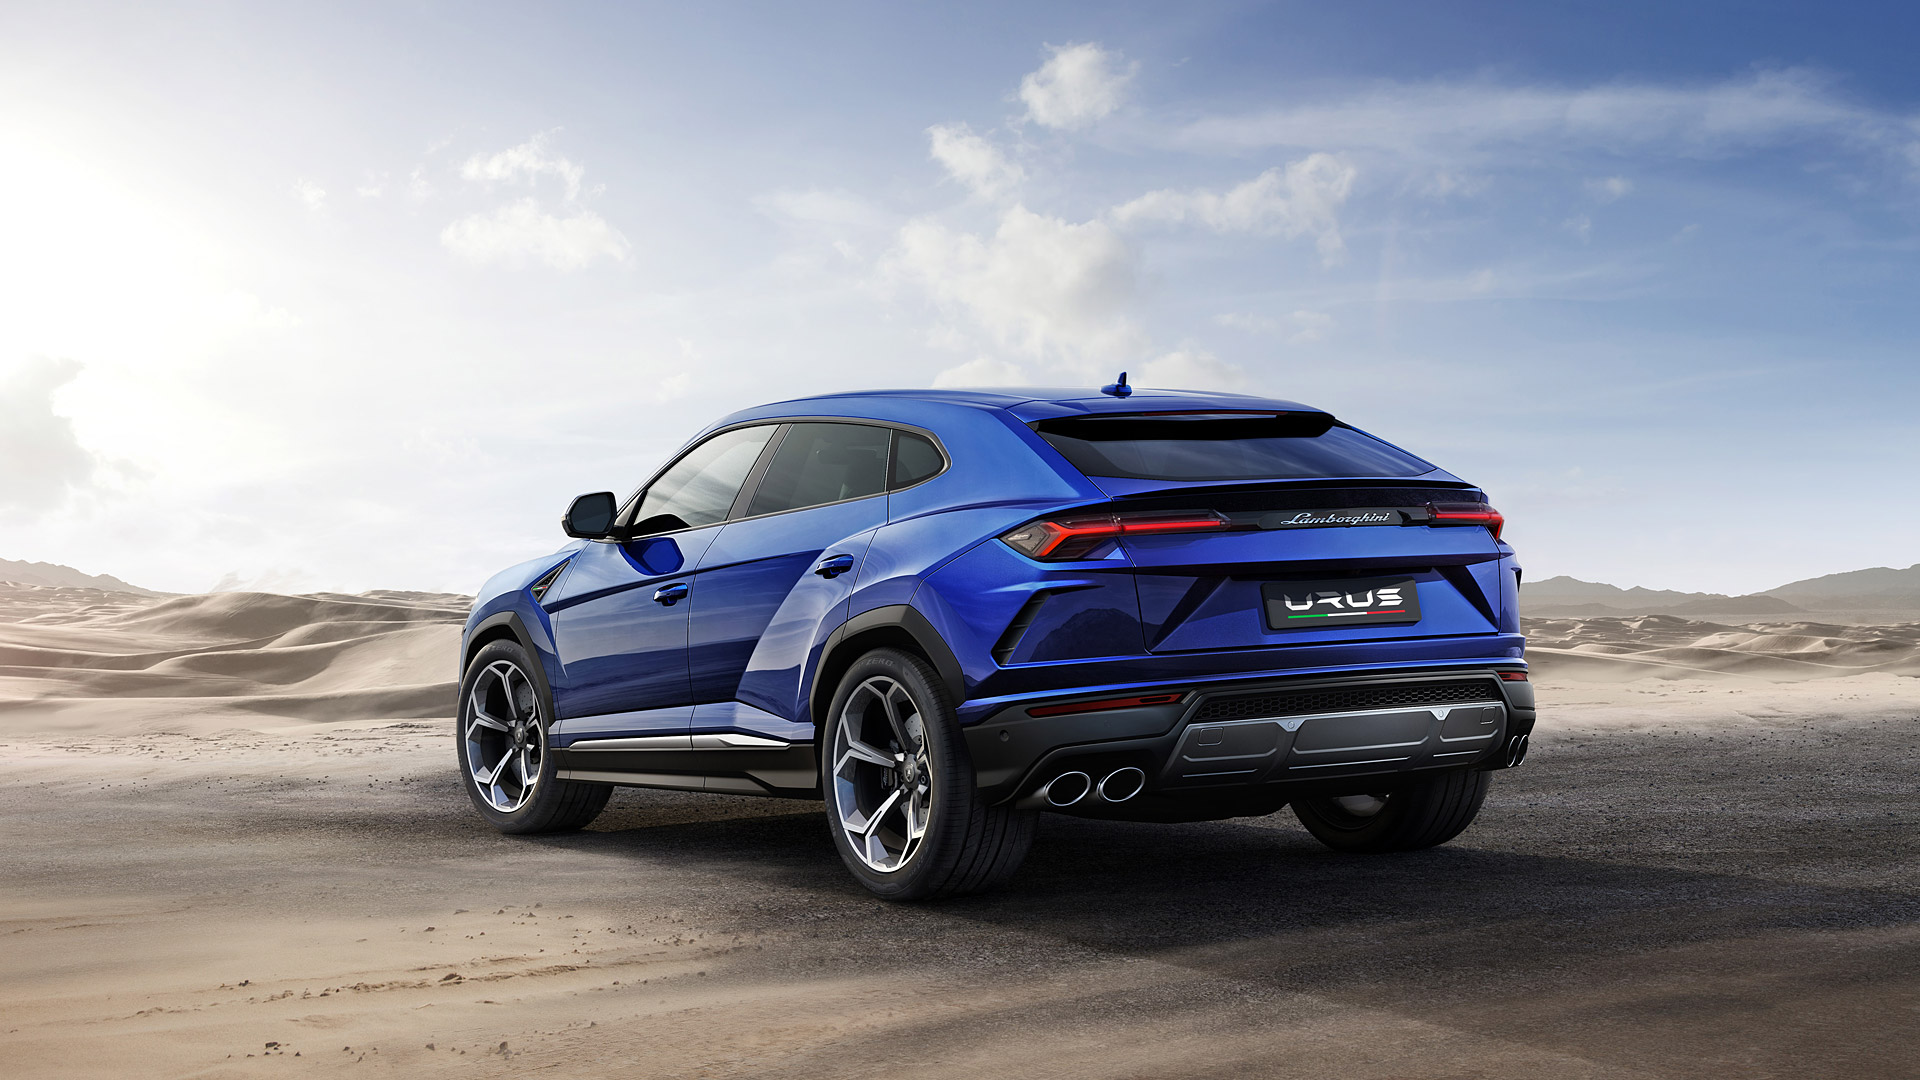 2019 Lamborghini Urus Wallpapers HD Images   WSupercars 1920x1080